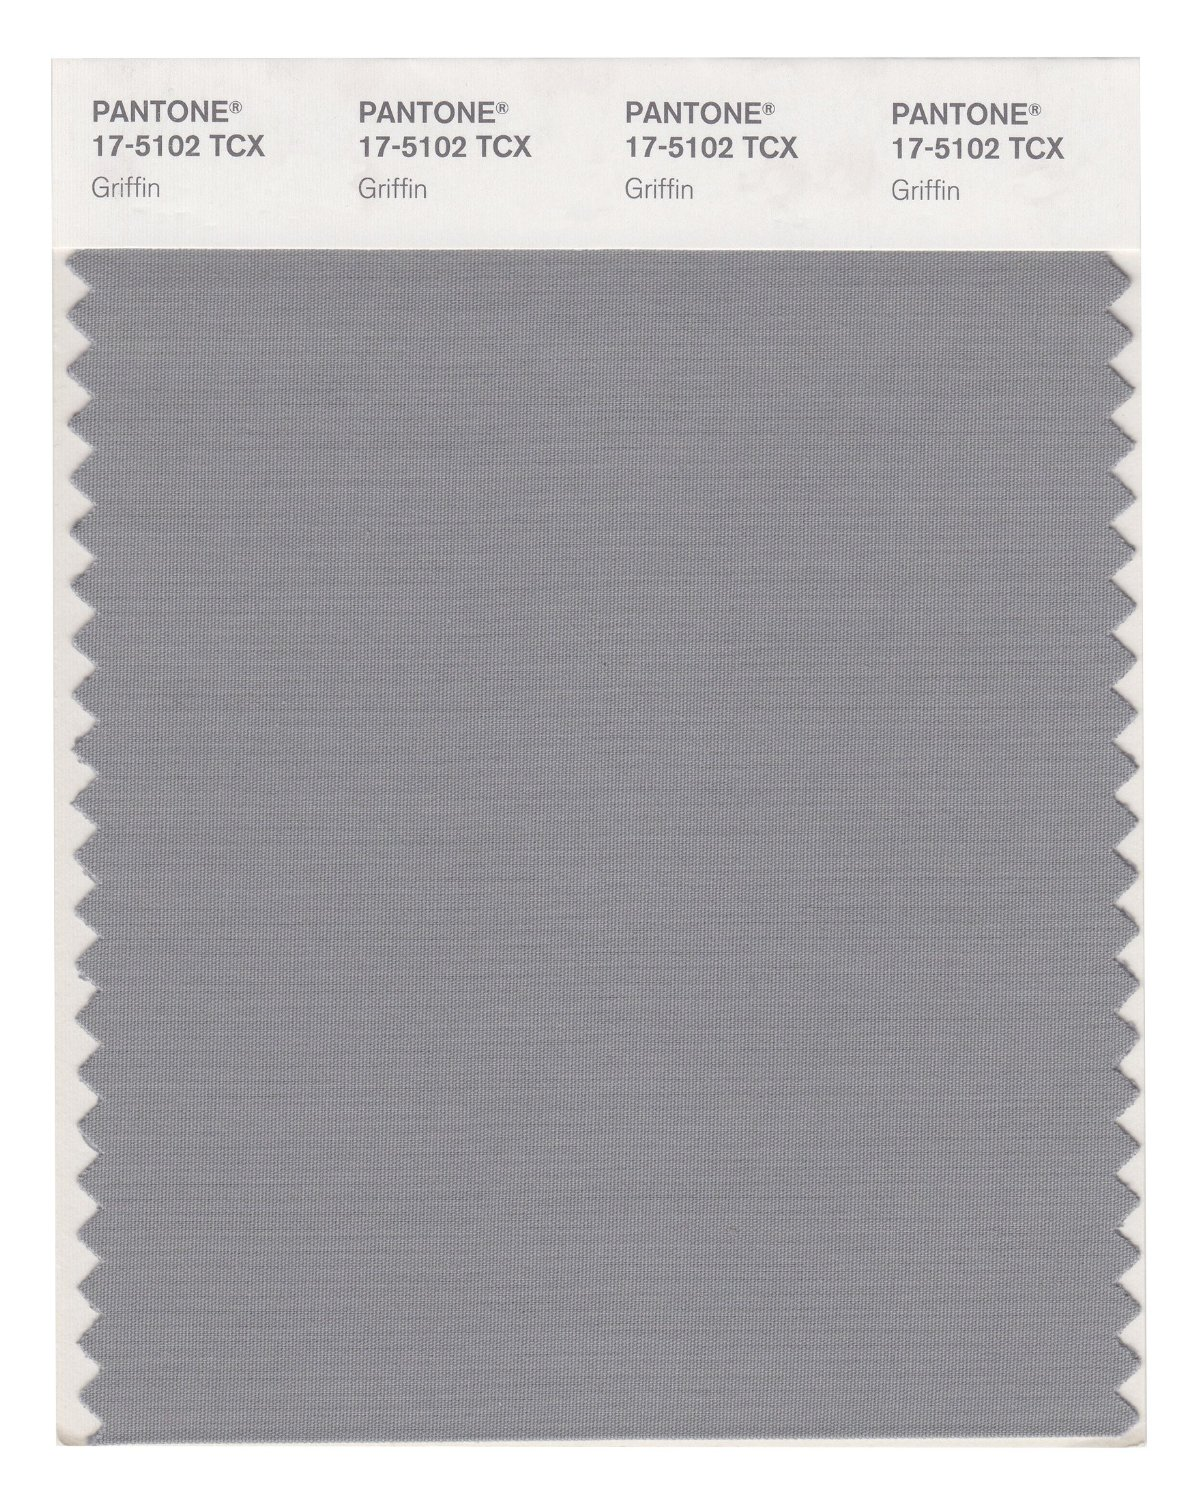 Pantone Smart Swatch 17-5102 Griffin